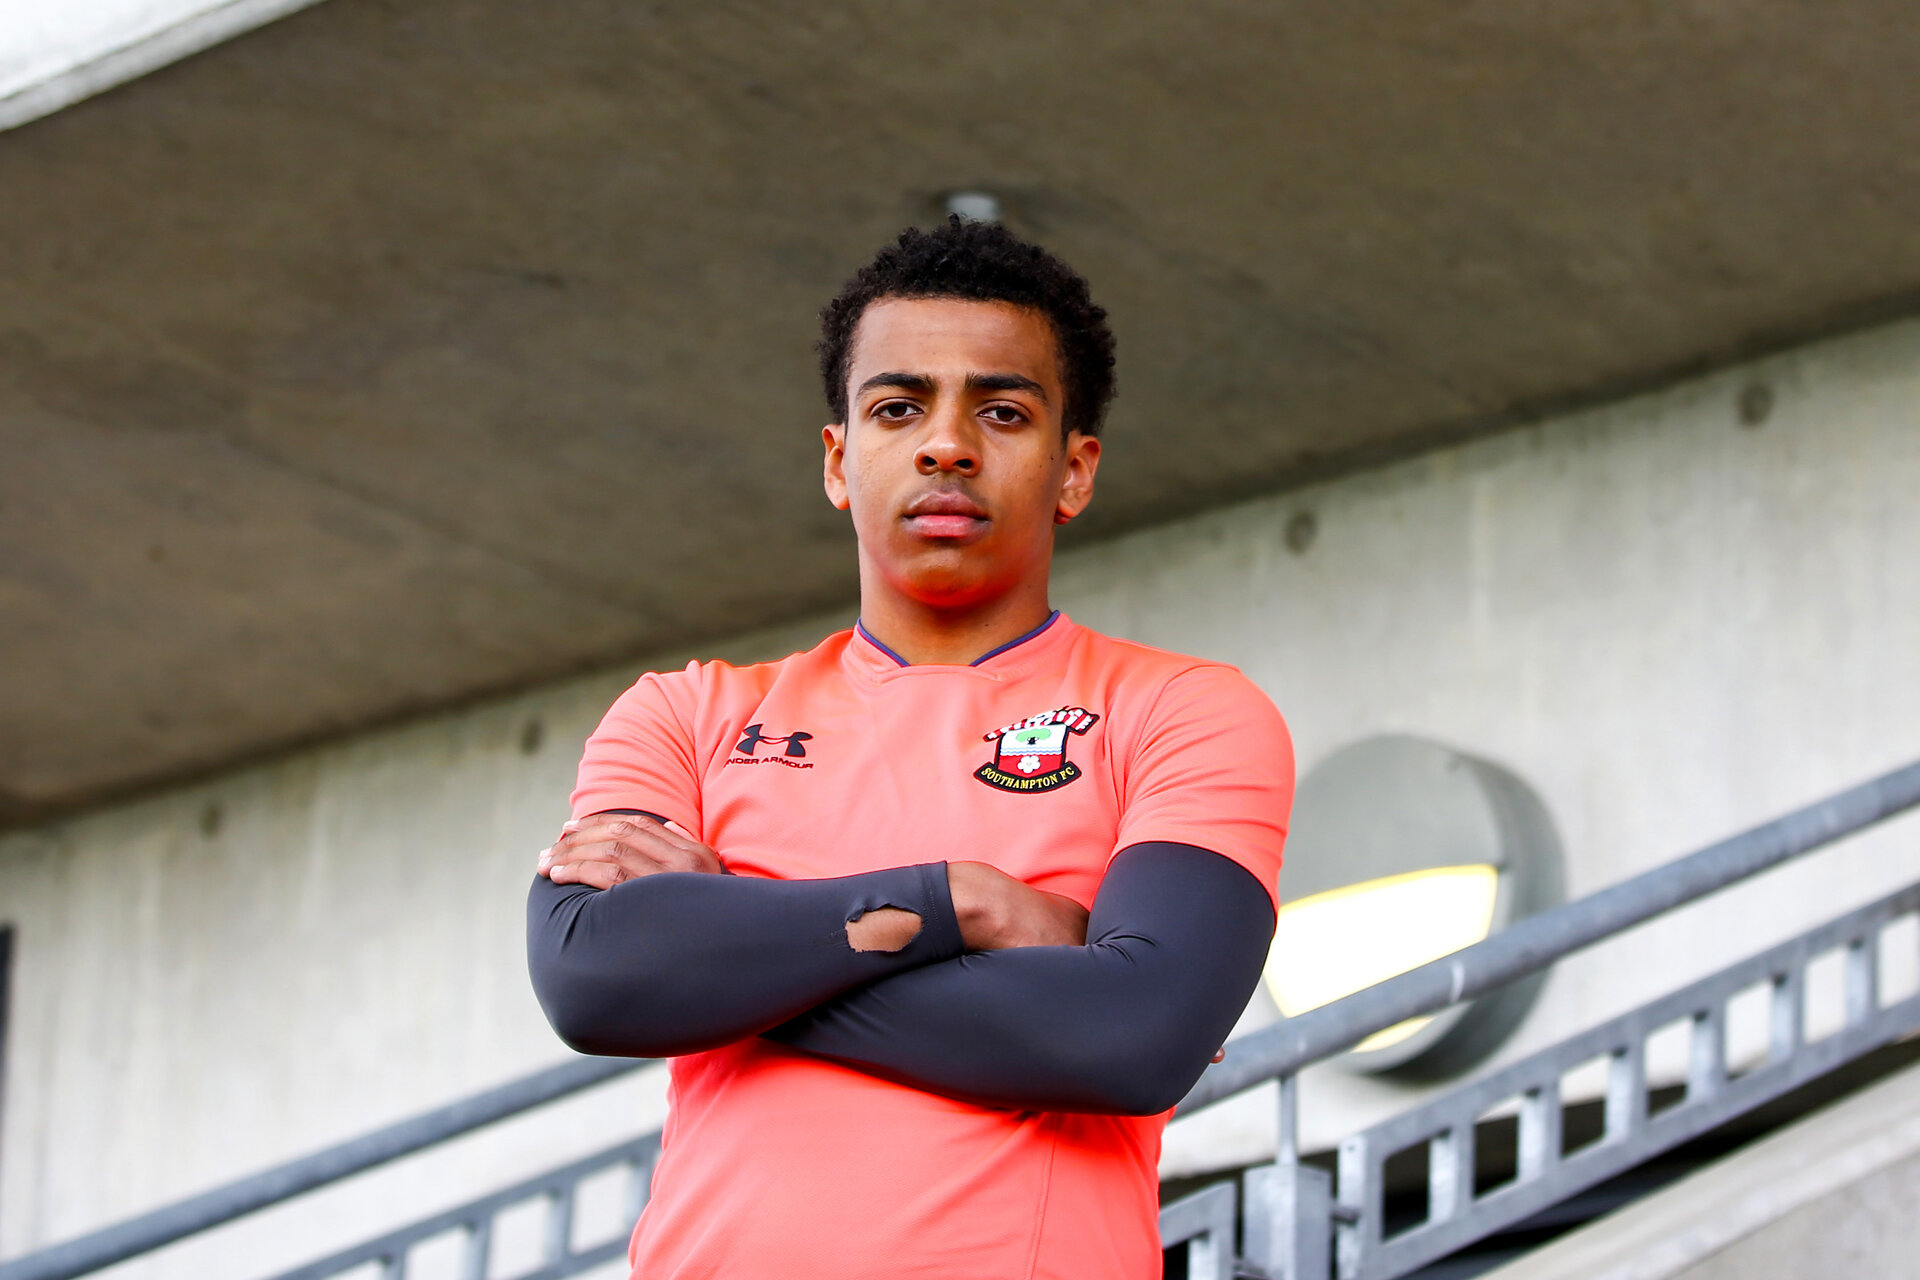 SOUTHAMPTON, ENGLAND - MAY 05: Caleb Watts photographed at Staplewood Training Ground on May 05 2021 in Southampton, England. (Photo by Isabelle Field/Southampton FC via Getty Images)